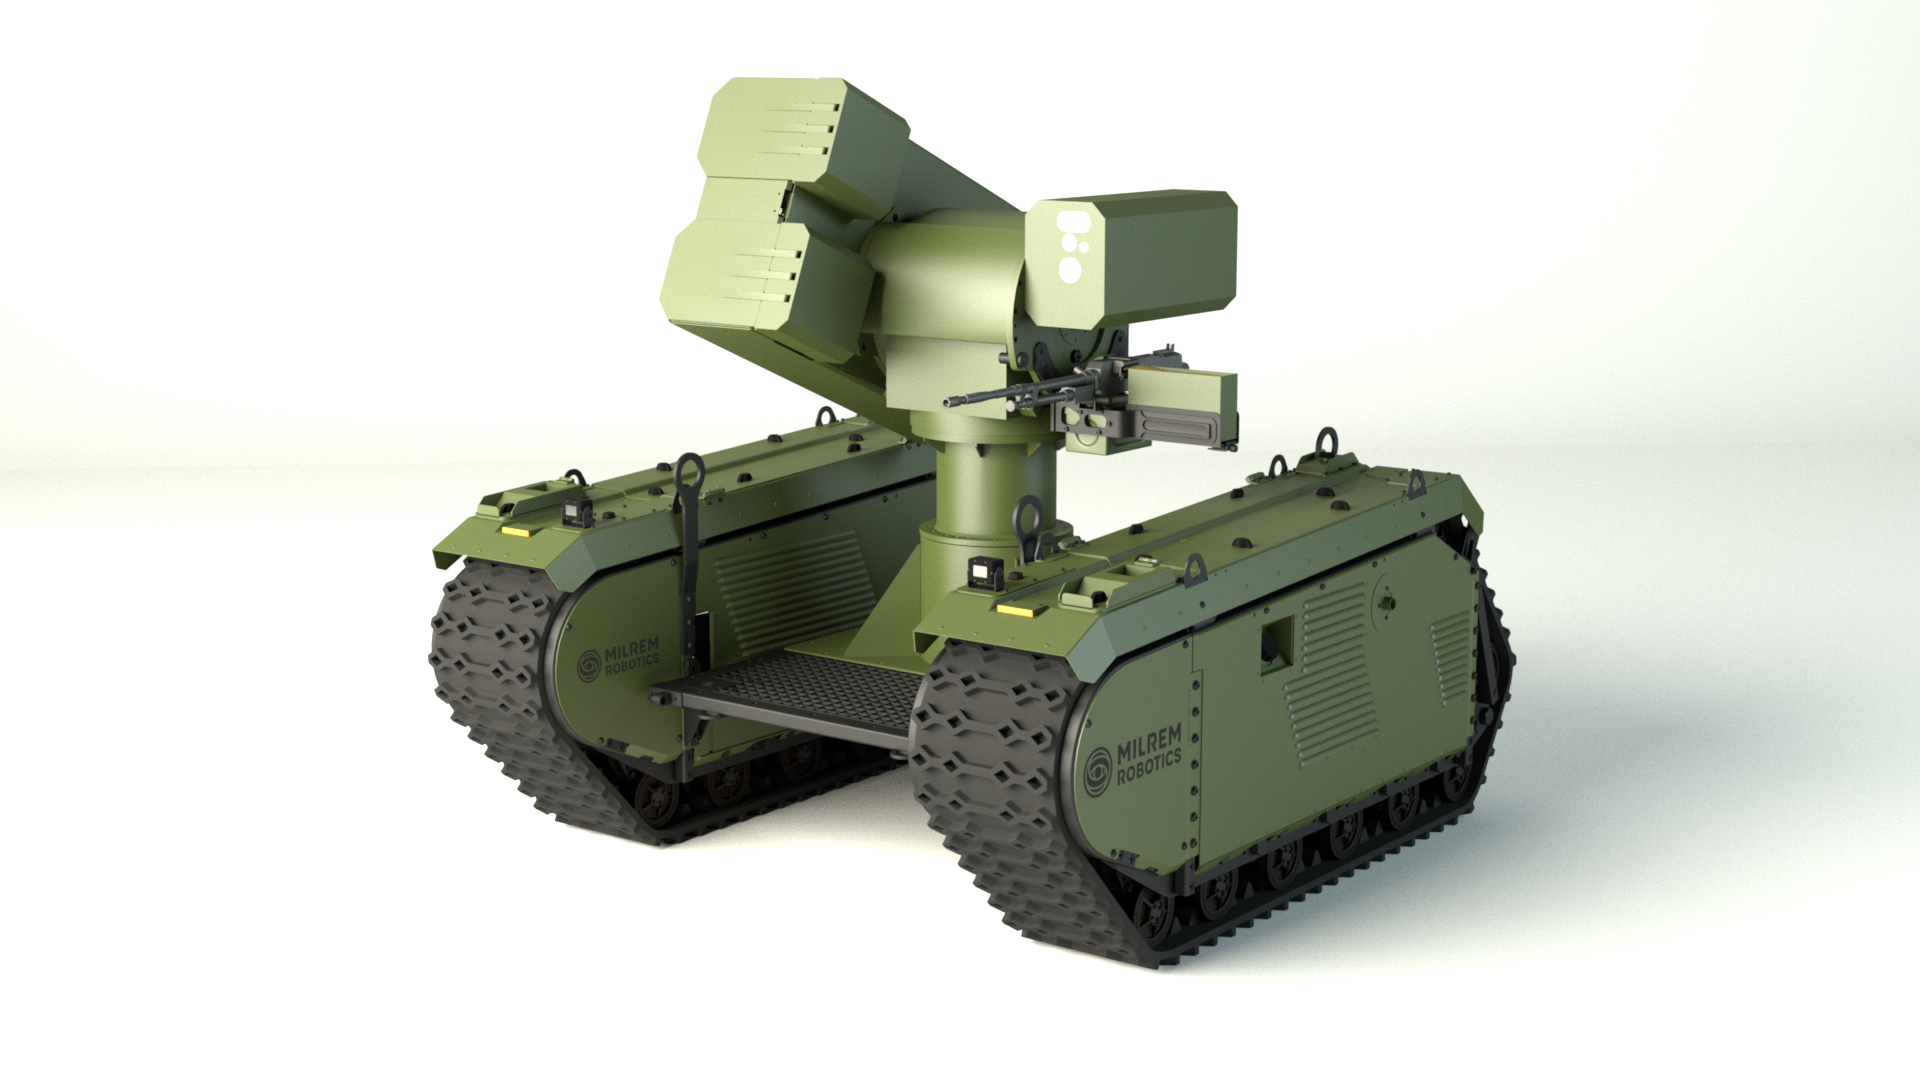 This Tank-Killer Robot Could Revolutionize Ground Warfare